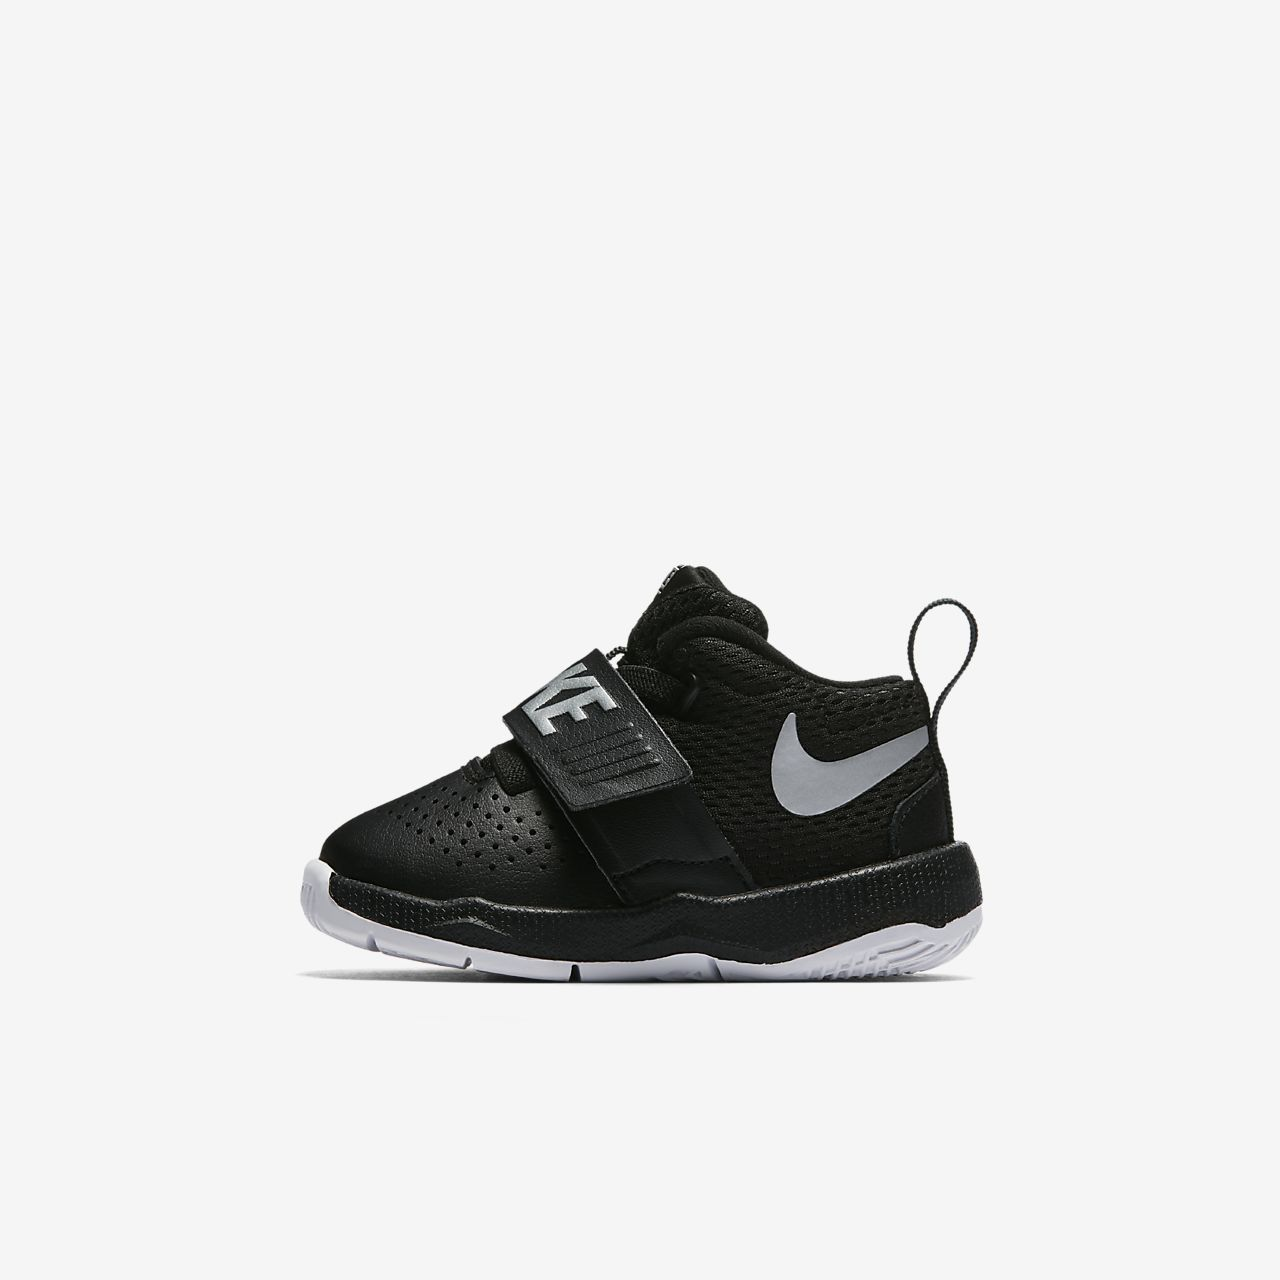 b17a1603799 Nike Team Hustle D 8 Toddler Shoe. Nike.com